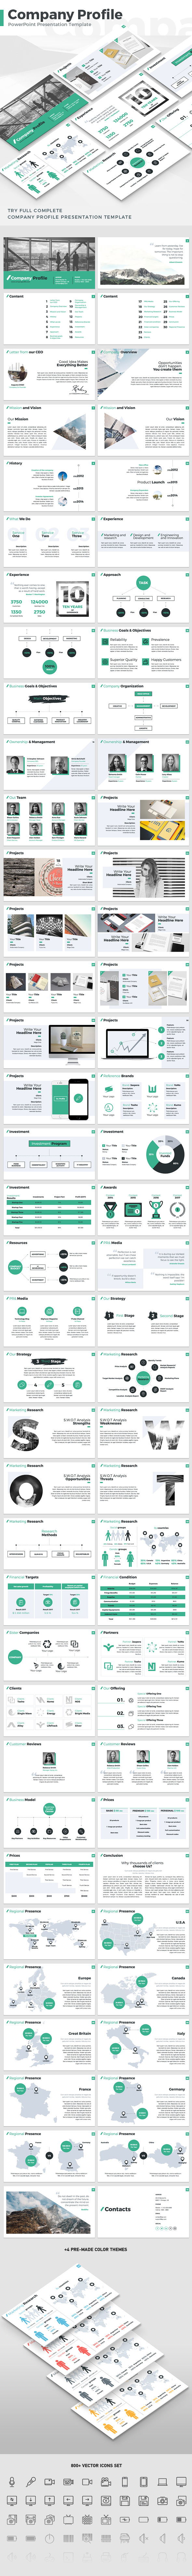 Company Profile - PowerPoint Presentation Template (PowerPoint Templates)